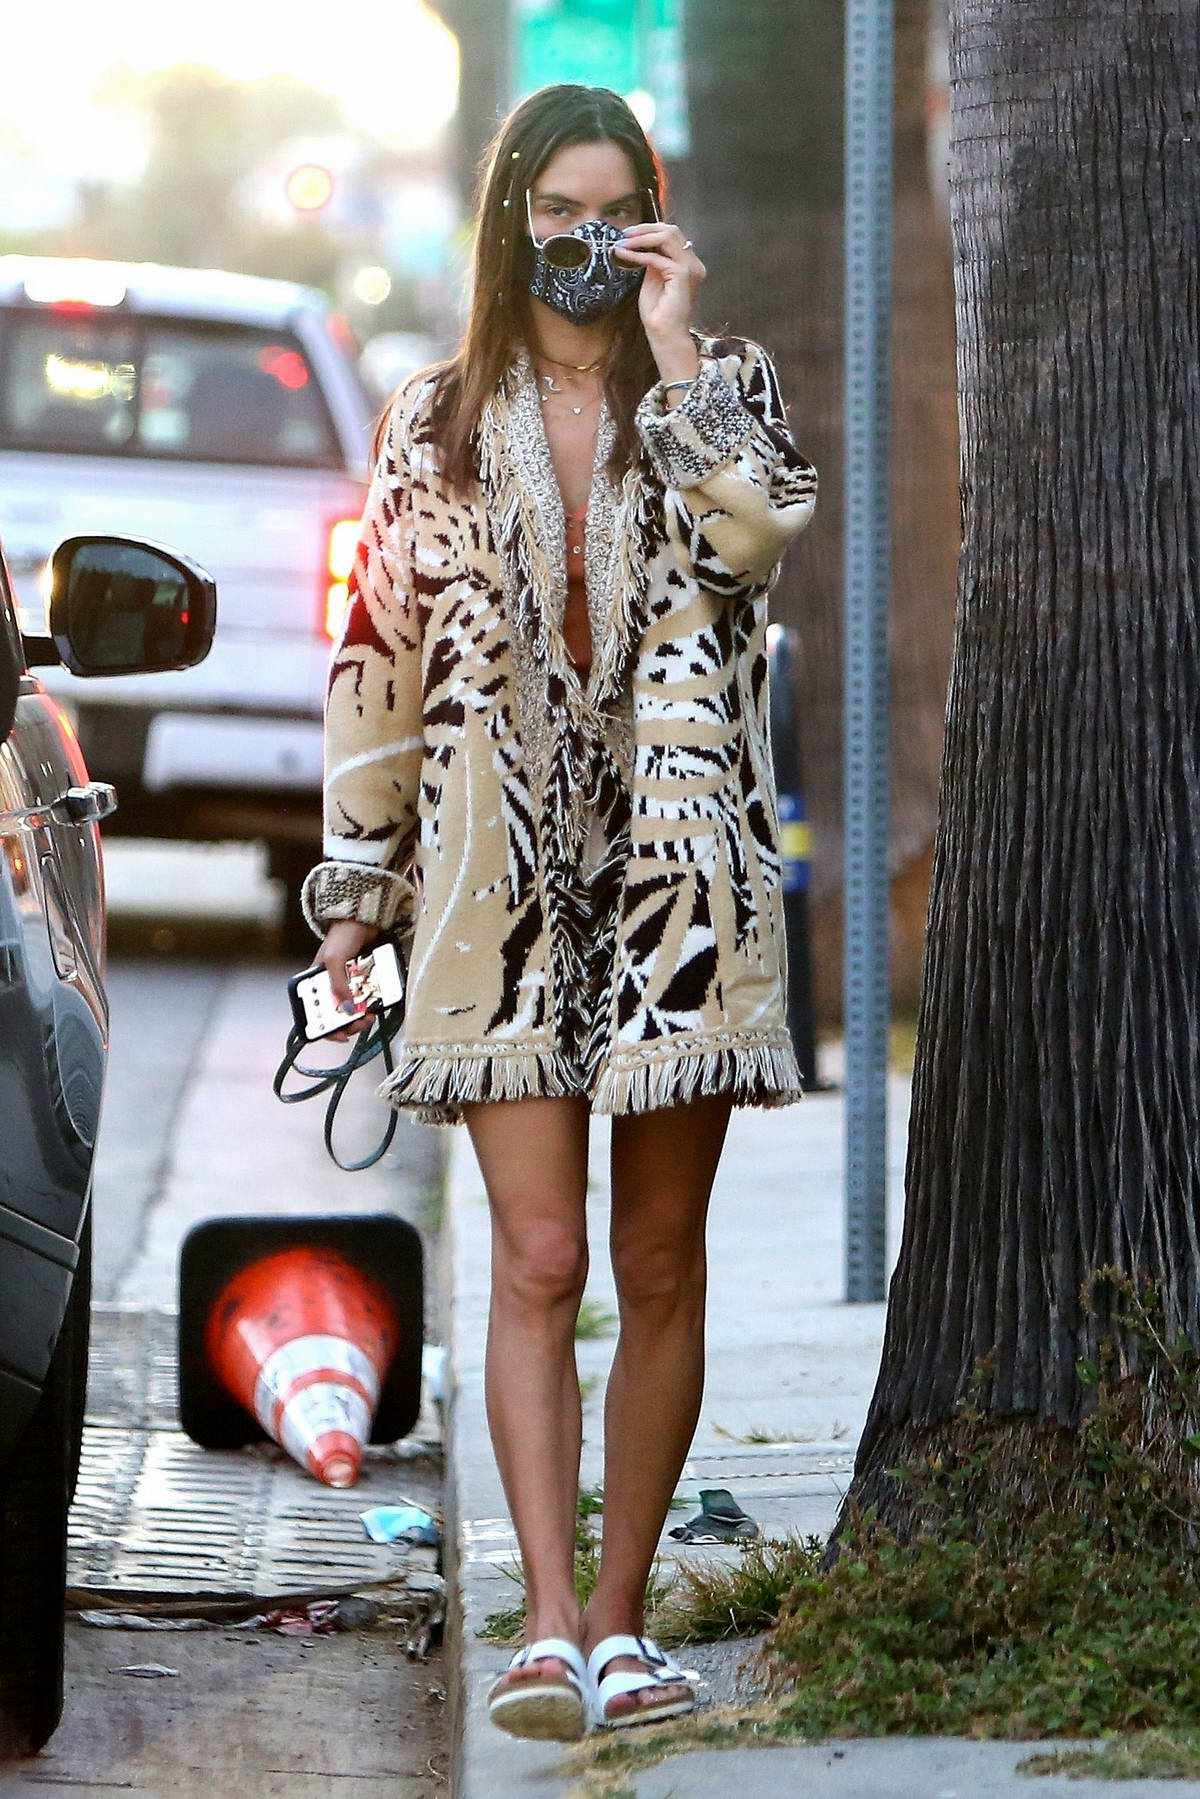 Alessandra Ambrosio seen wearing an animal print coat as she steps out with Nicolo Oddi in Venice, California